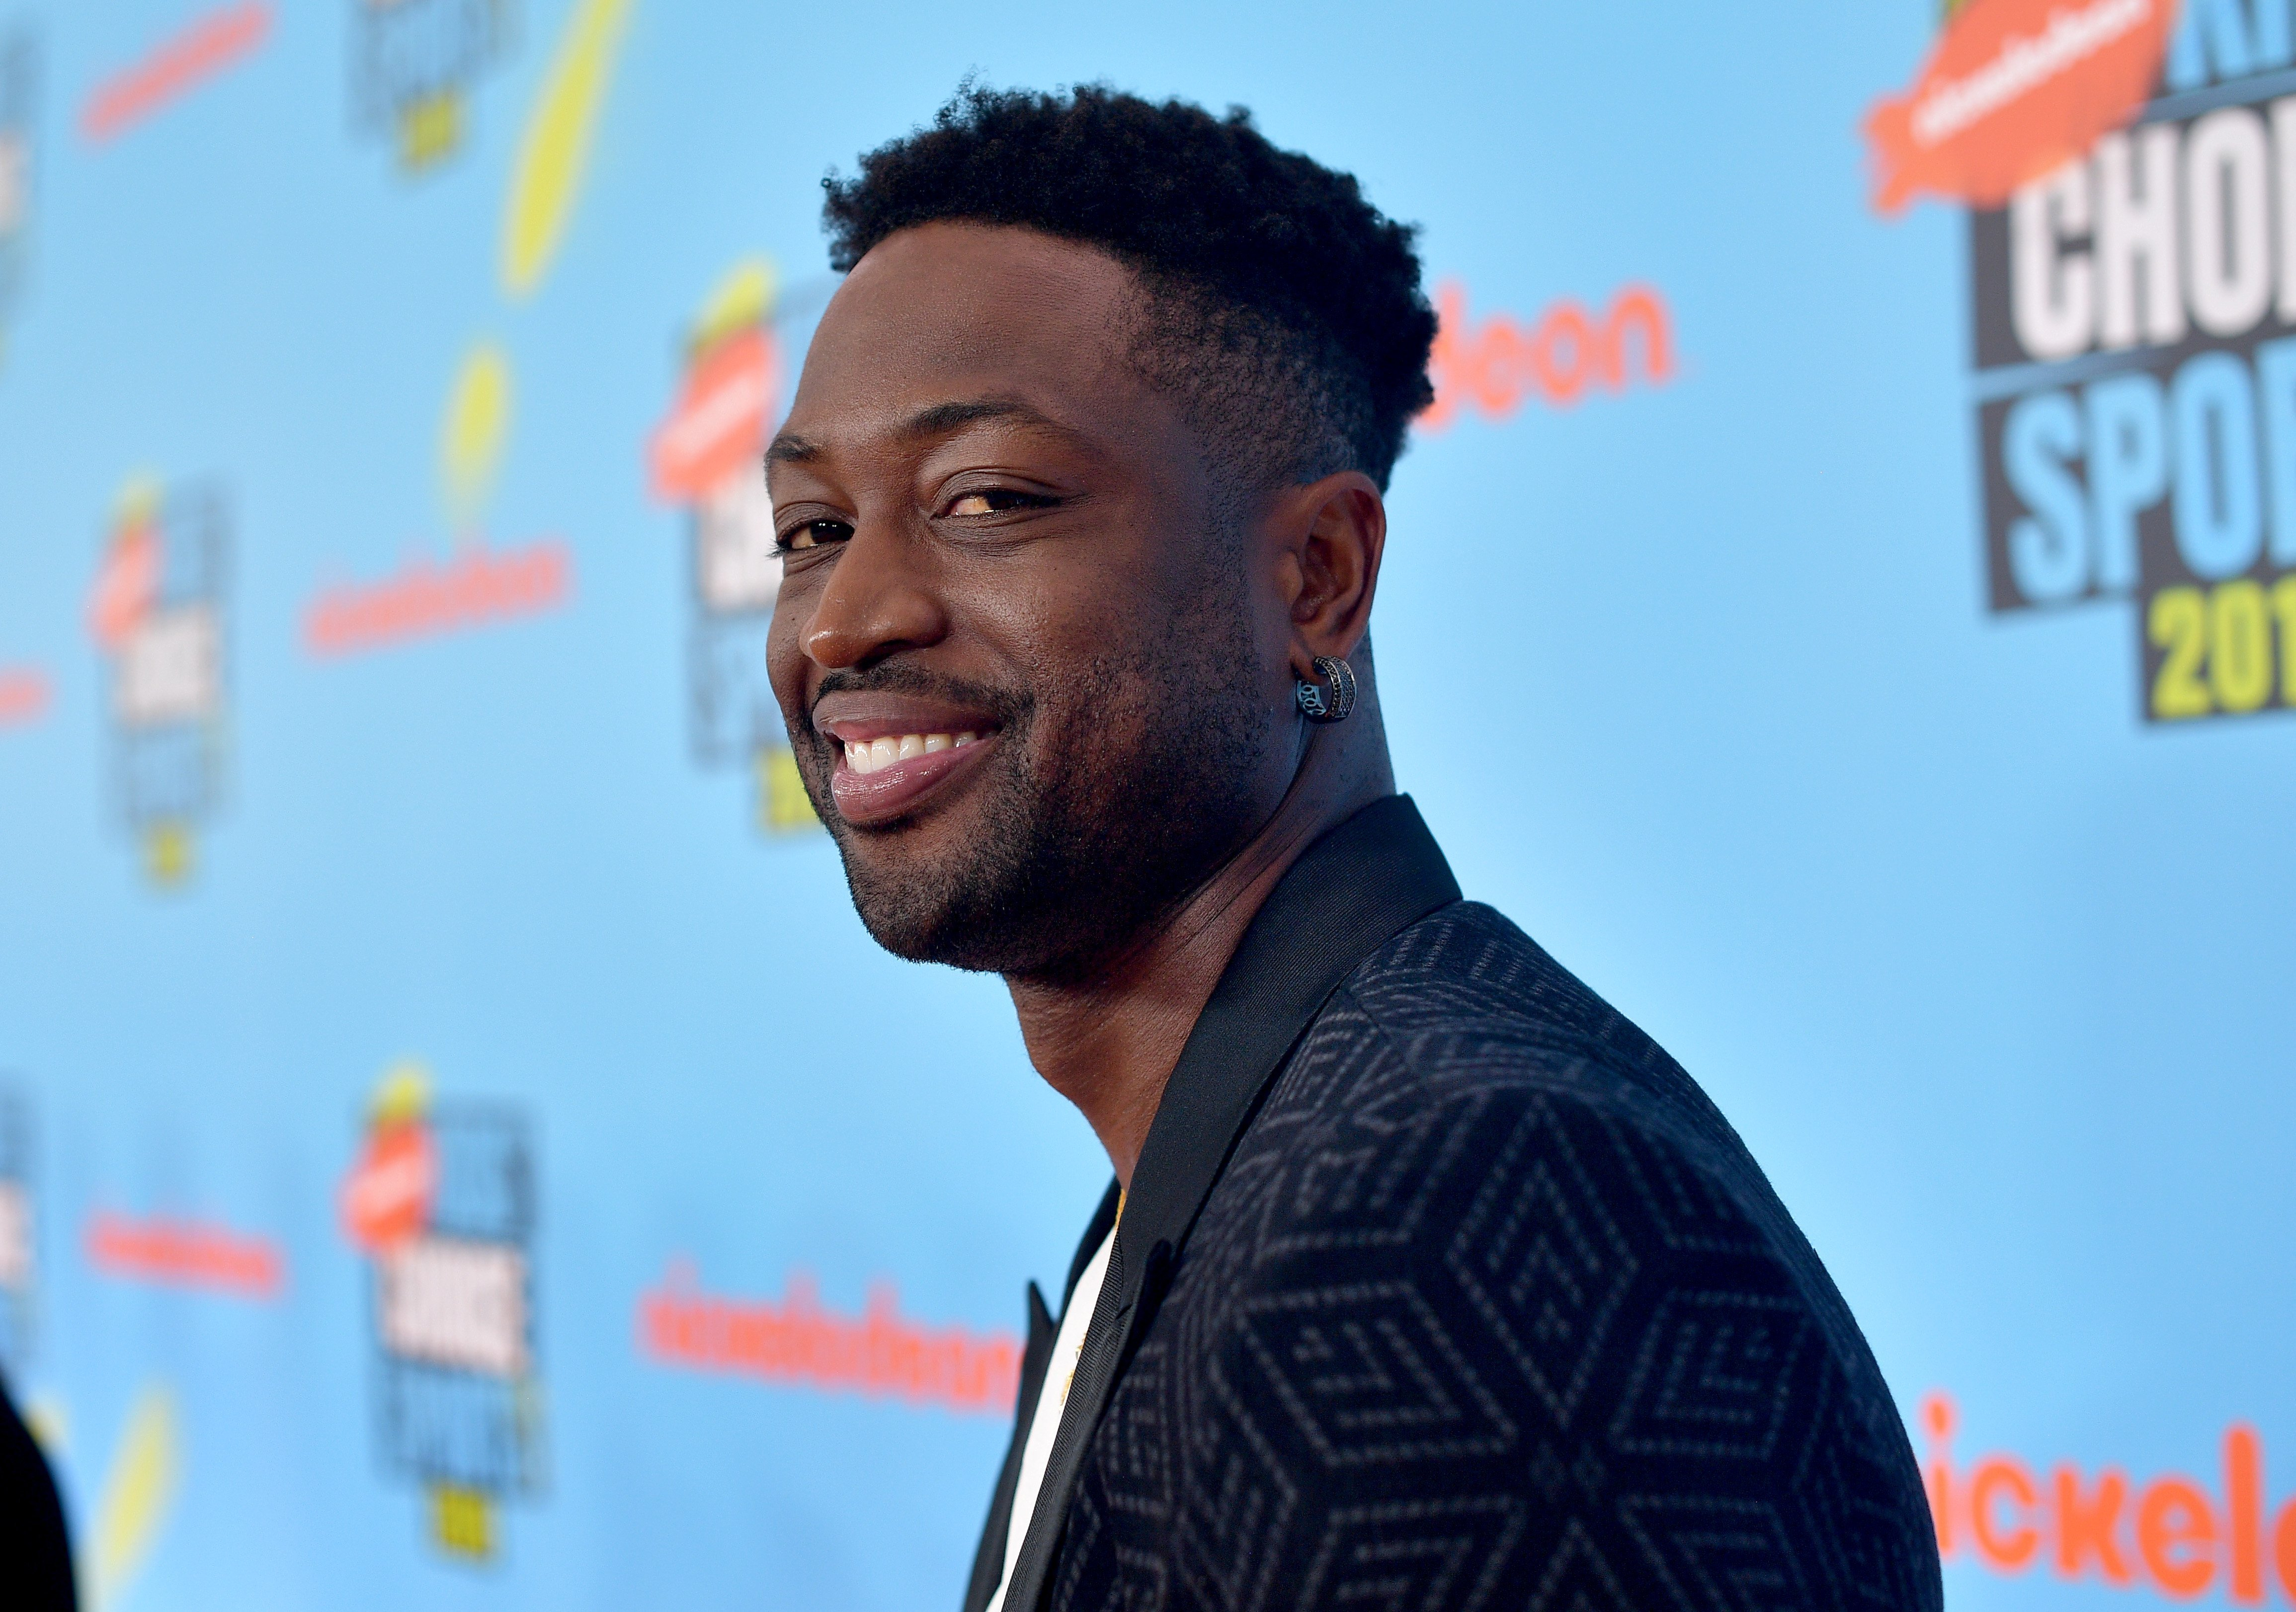 Dwyane Wade at Nickelodeon Kids' Choice Sports 2019 in July 2019 | Photo: Getty Images